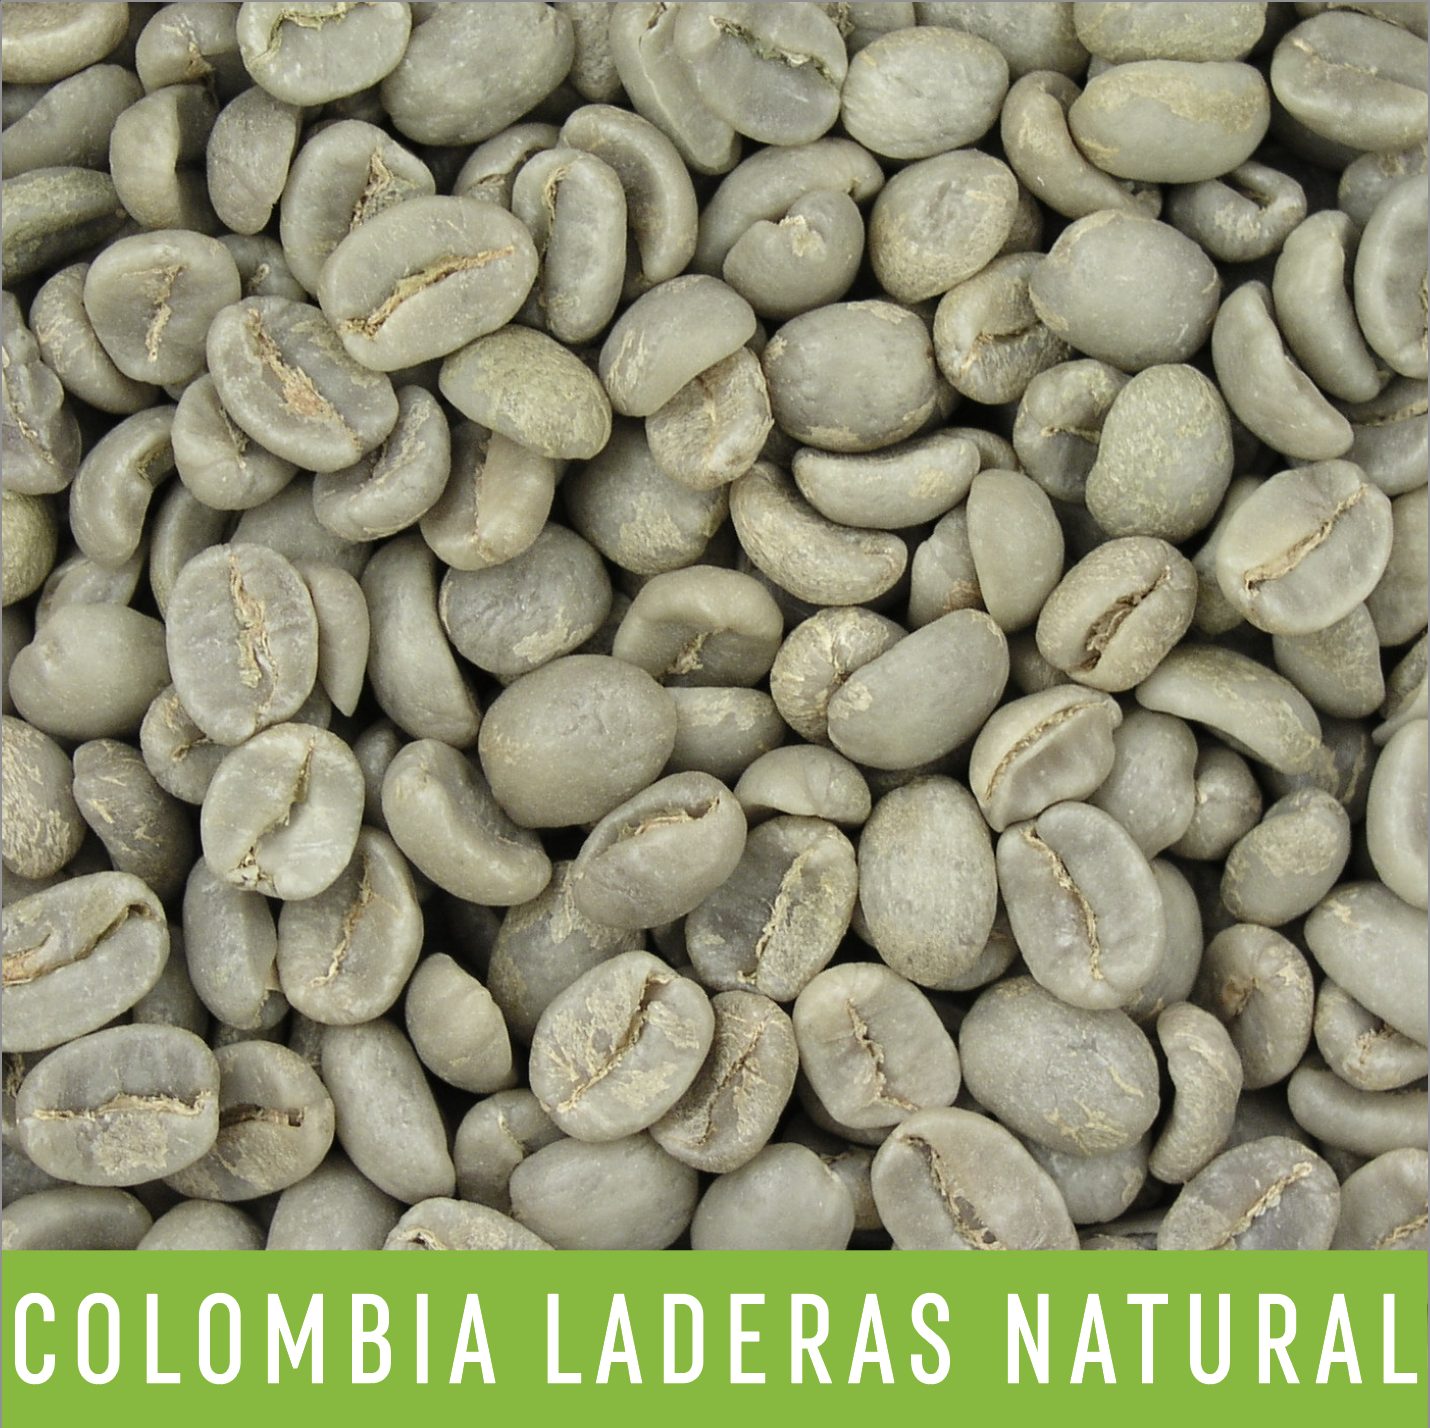 Picture Green Coffee Beans: Colombia Laderas Natural - 1 LB